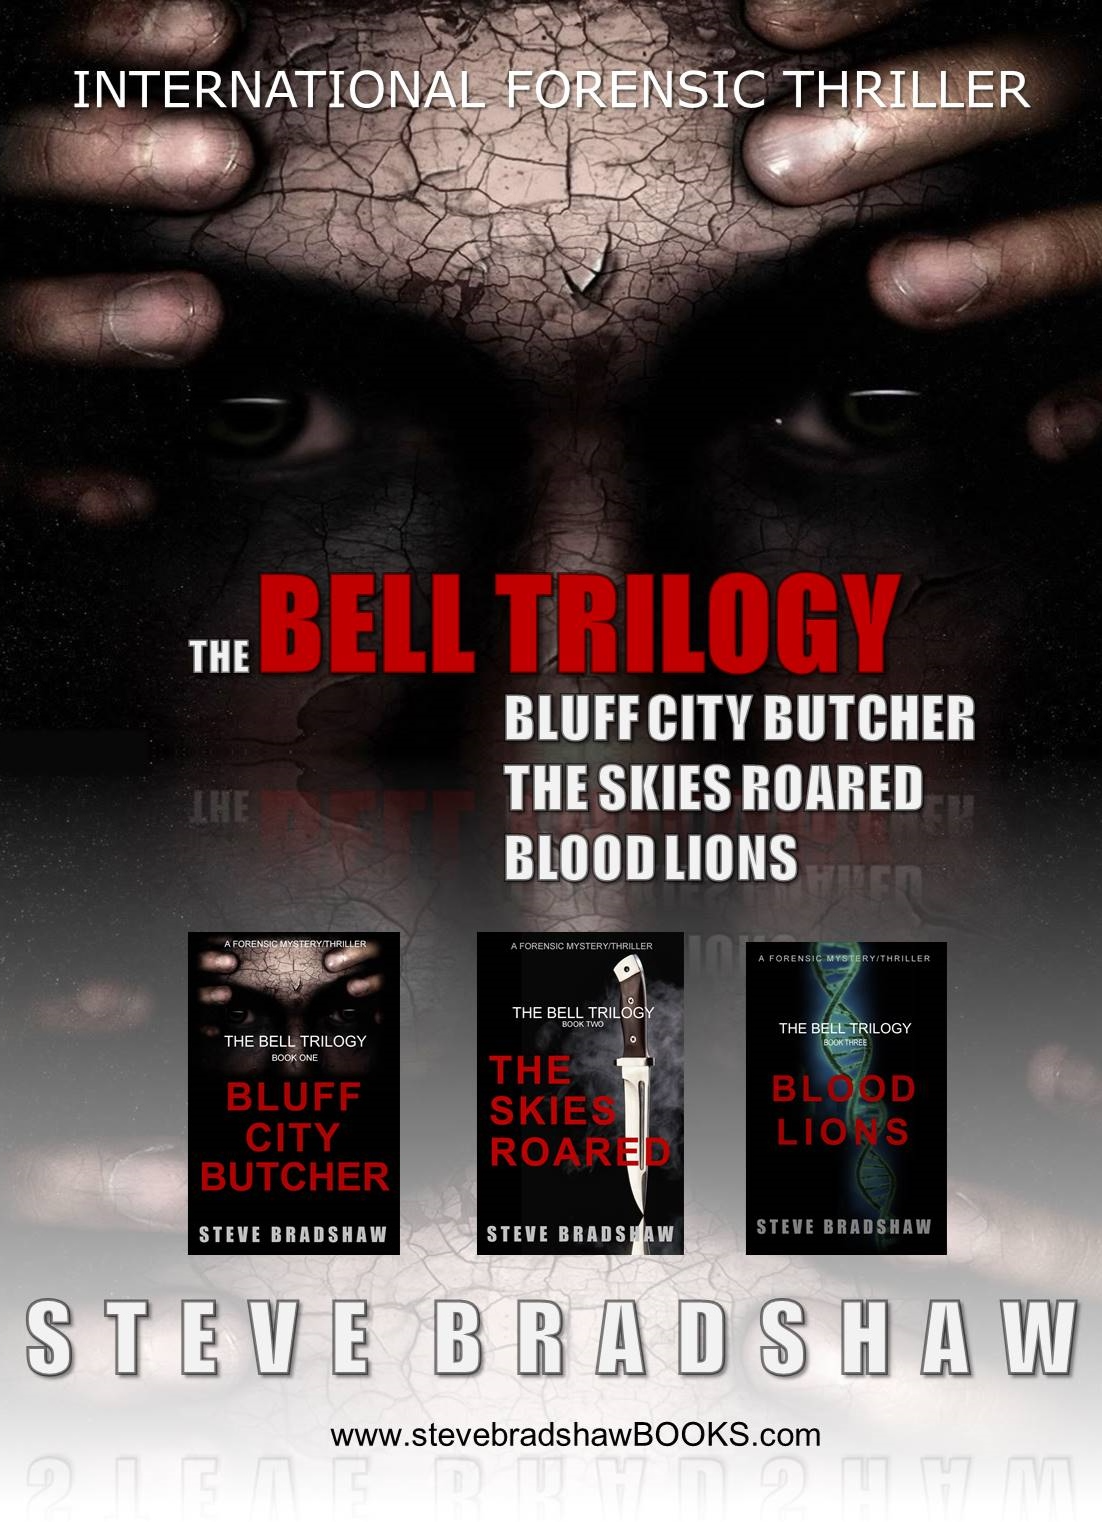 The Bell Trilogy